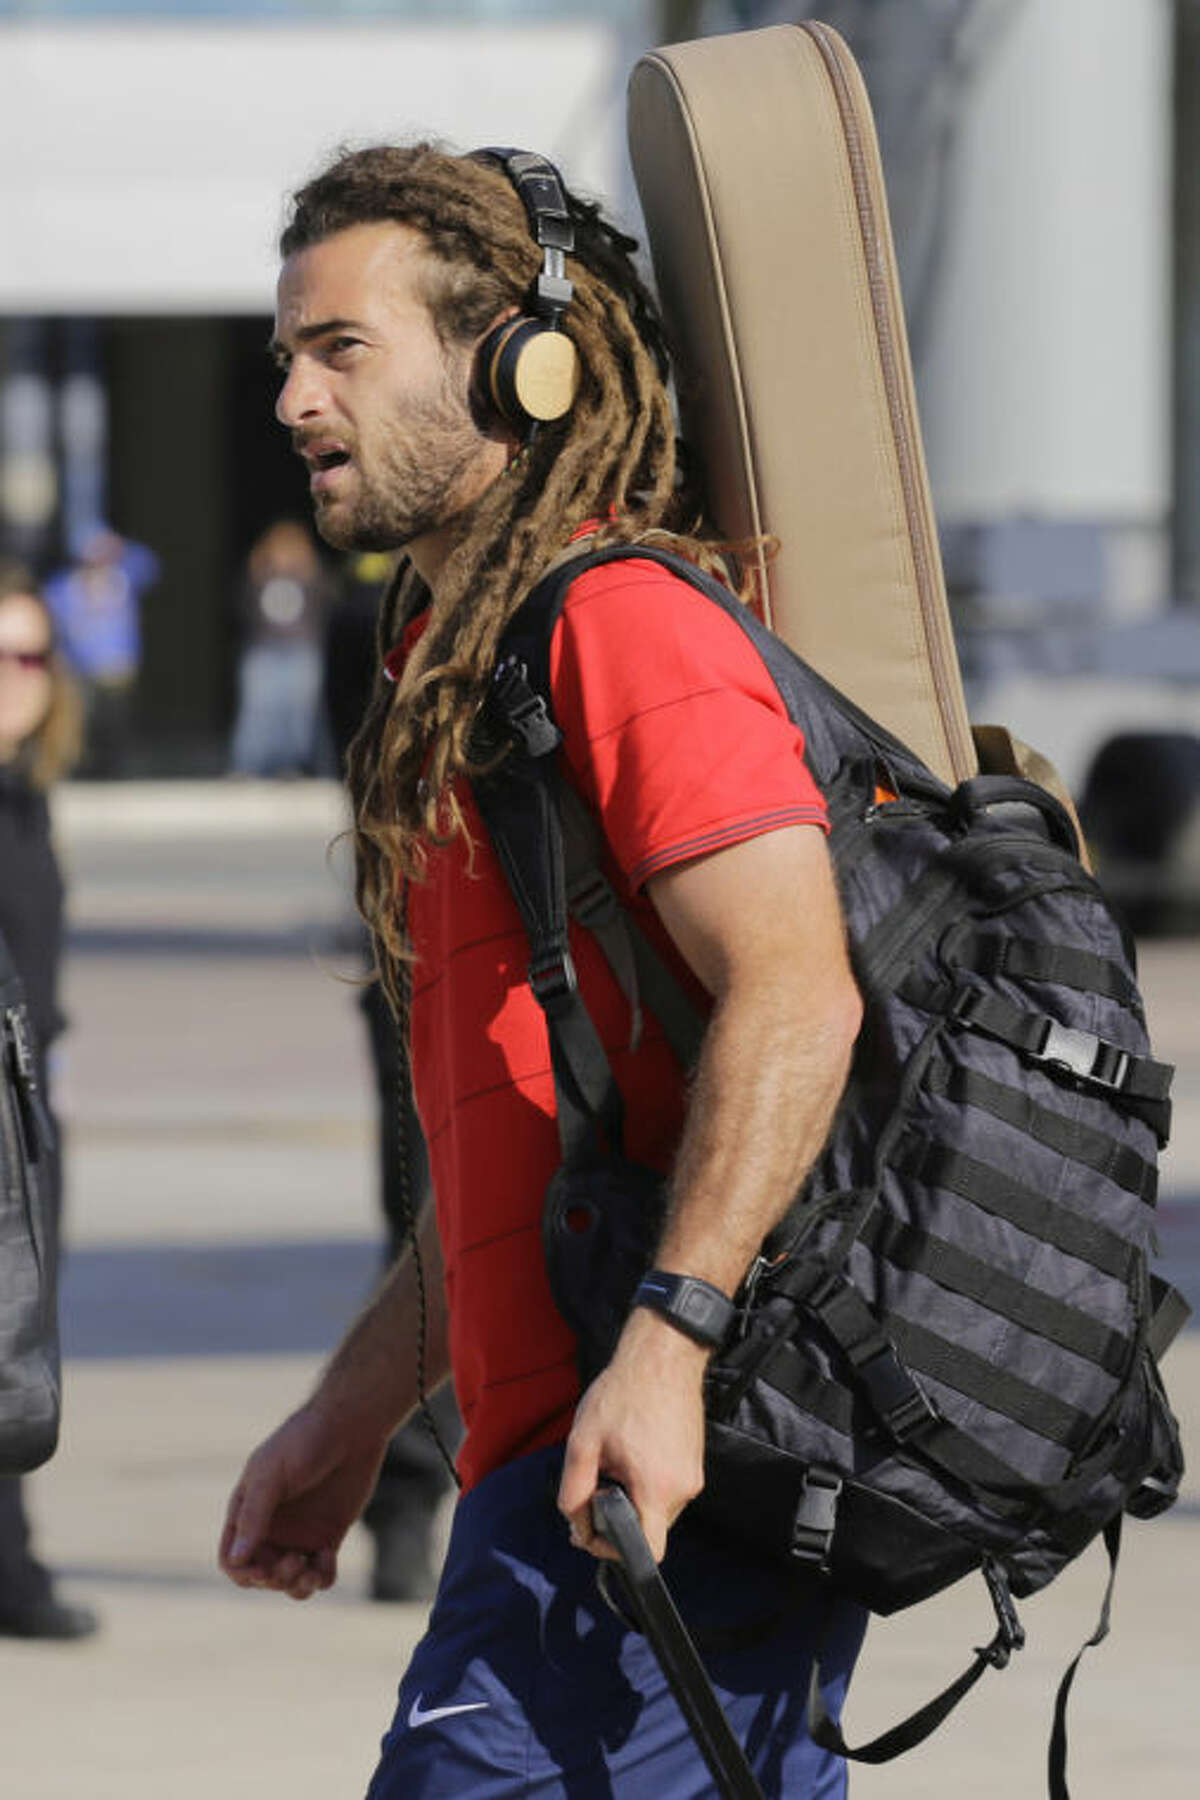 United States' national soccer team player Kyle Beckerman arrives at the Sao Paulo International airport in Brazil, Monday, June 9, 2014. U.S. team arrived in Sao Paulo to continue their preparations for the upcoming Brazil 2014 World Cup, which starts on June 12. (AP Photo/Nelson Antoine)